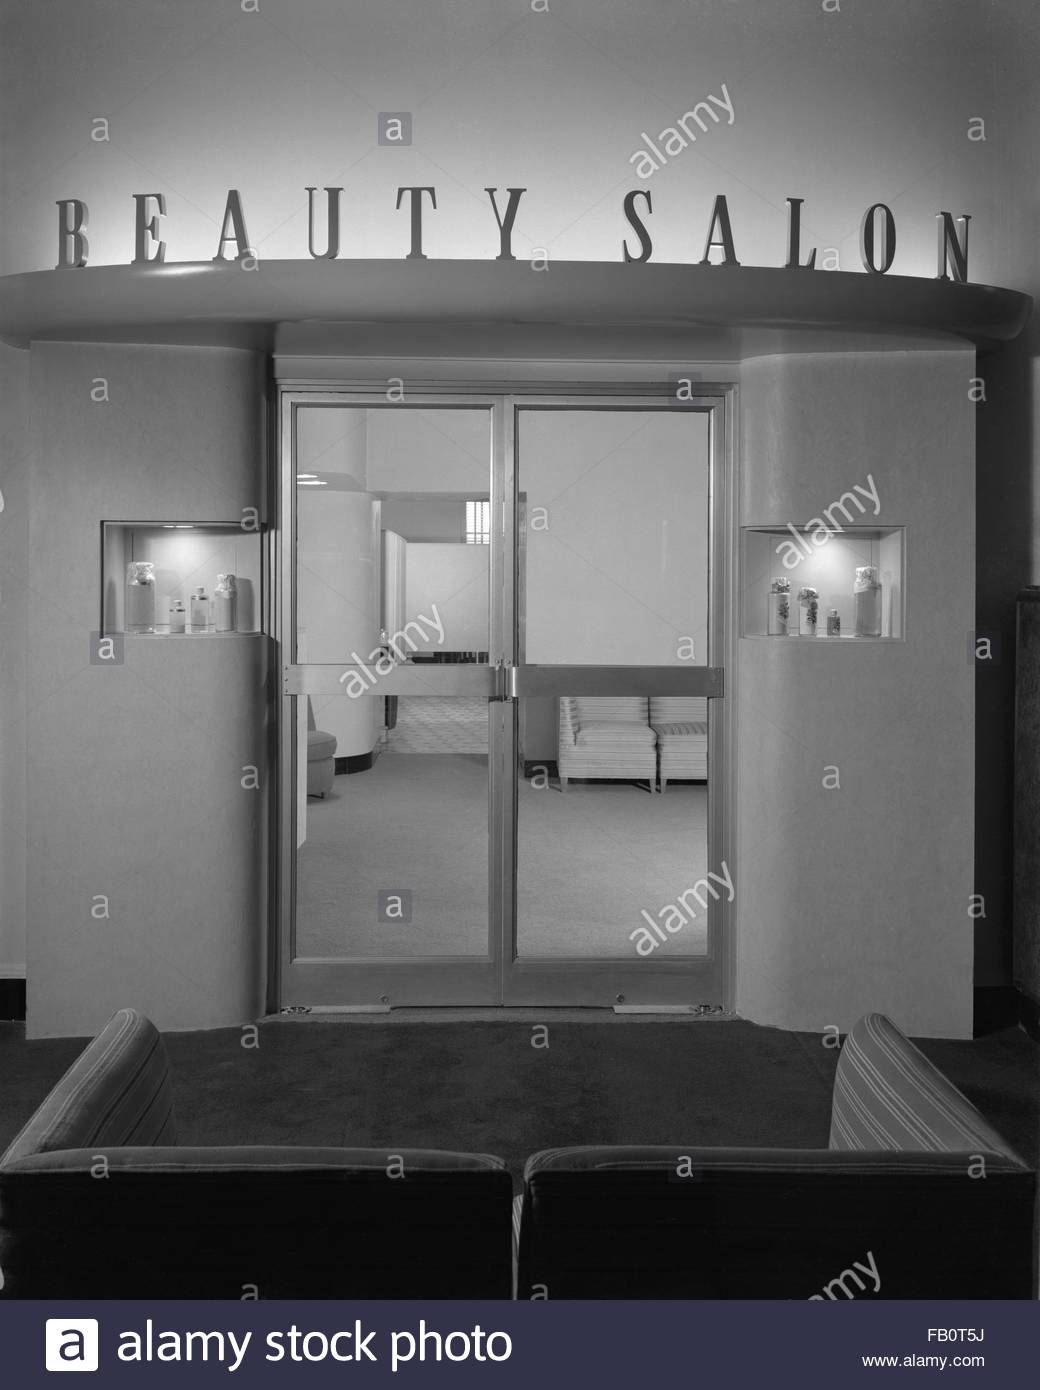 Beauty salon at Marshall Field and Company in Evanston, 1940 Dec. 31. Interior of beauty salon at Marshall Field - Stock Image